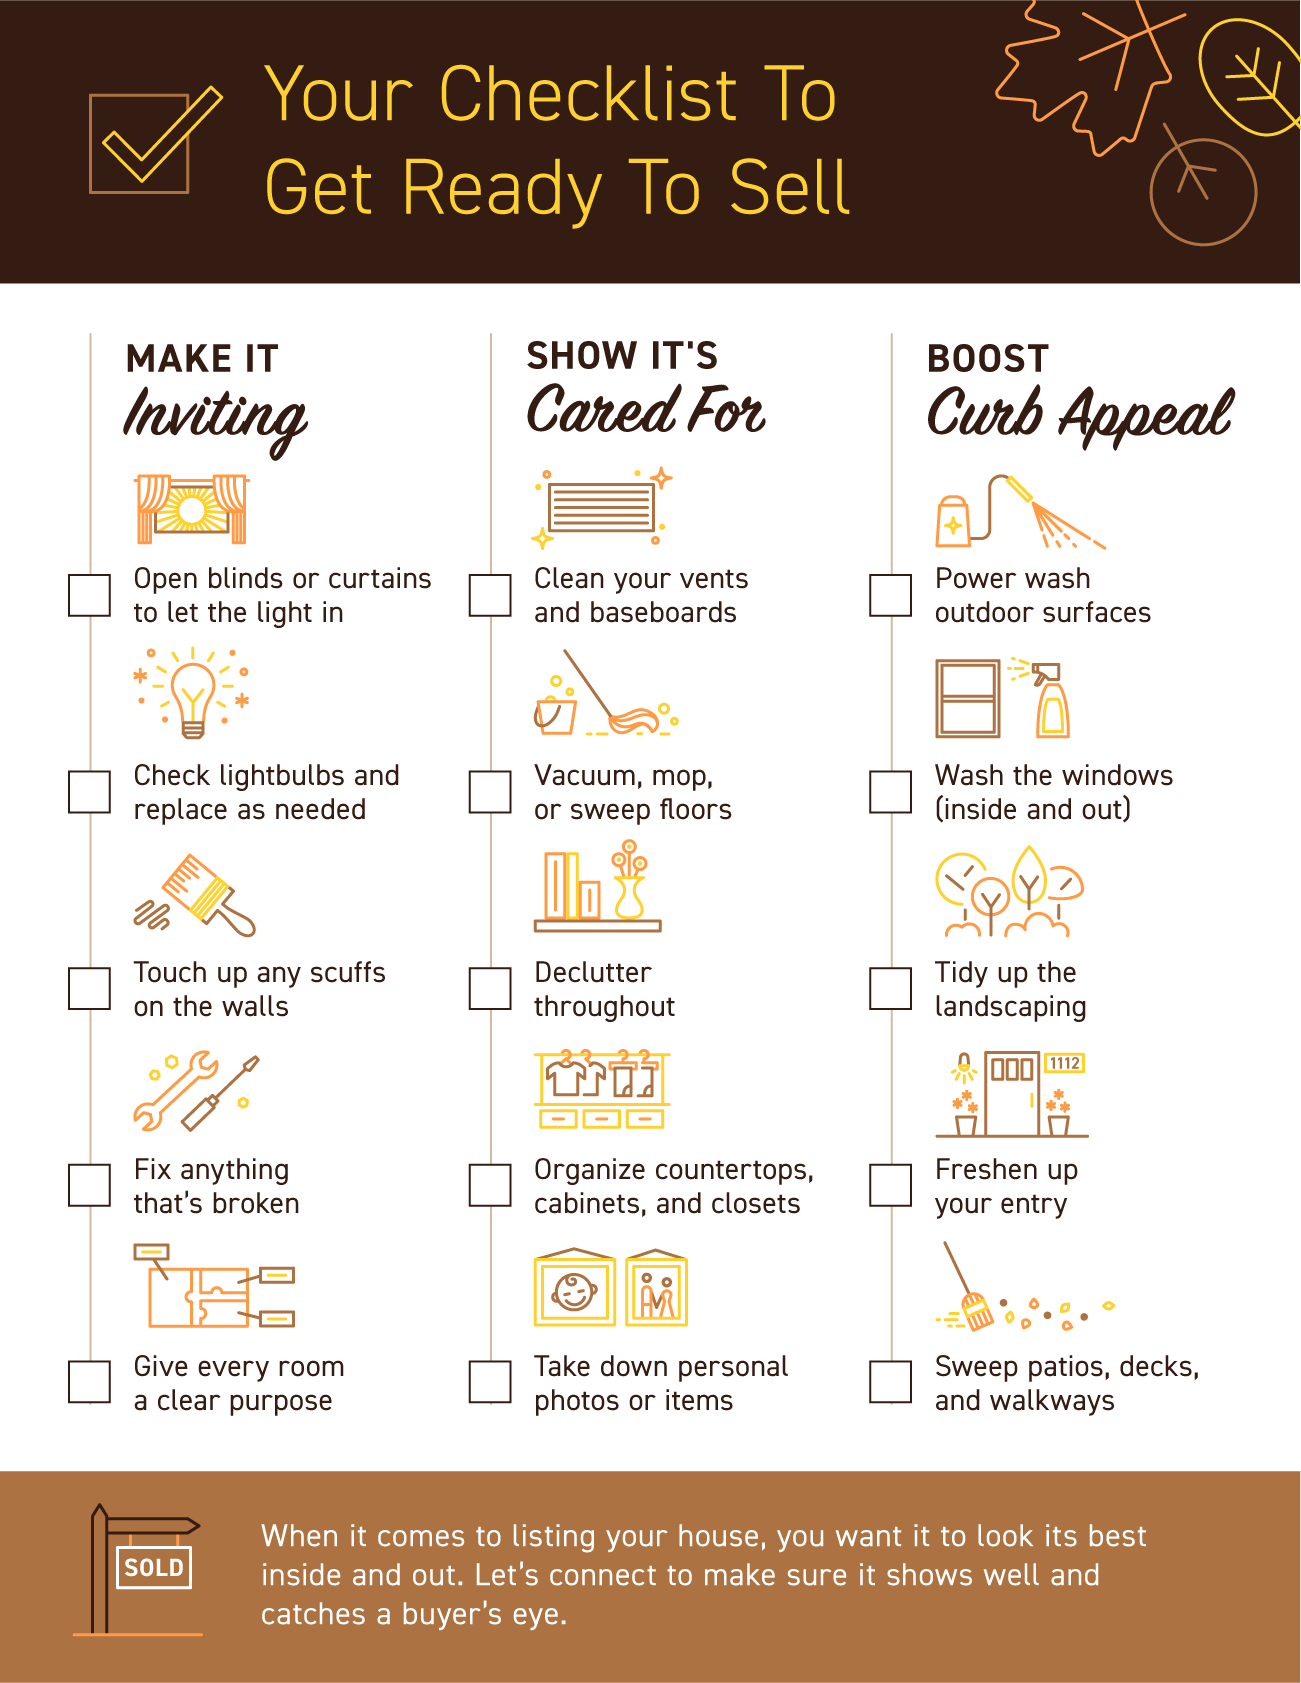 Your Checklist To Get Ready To Sell [INFOGRAPHIC]   Simplifying The Market